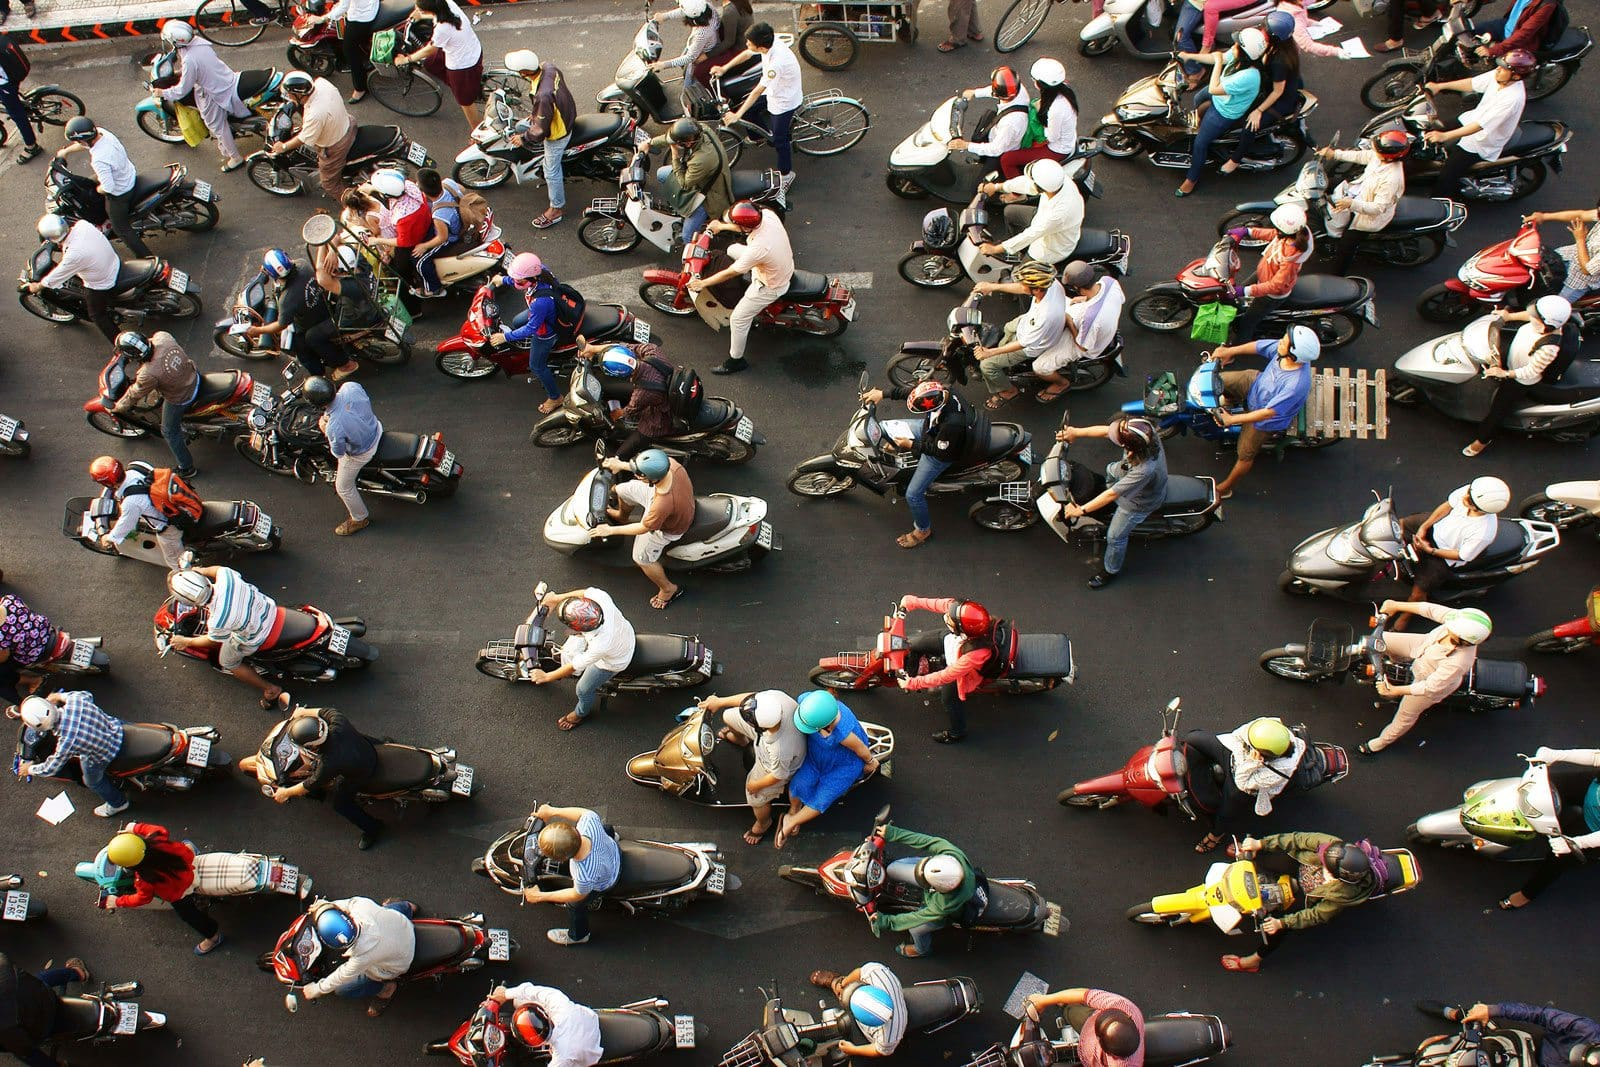 The chaotic streets of Ho Chi Minh City, Vietnam